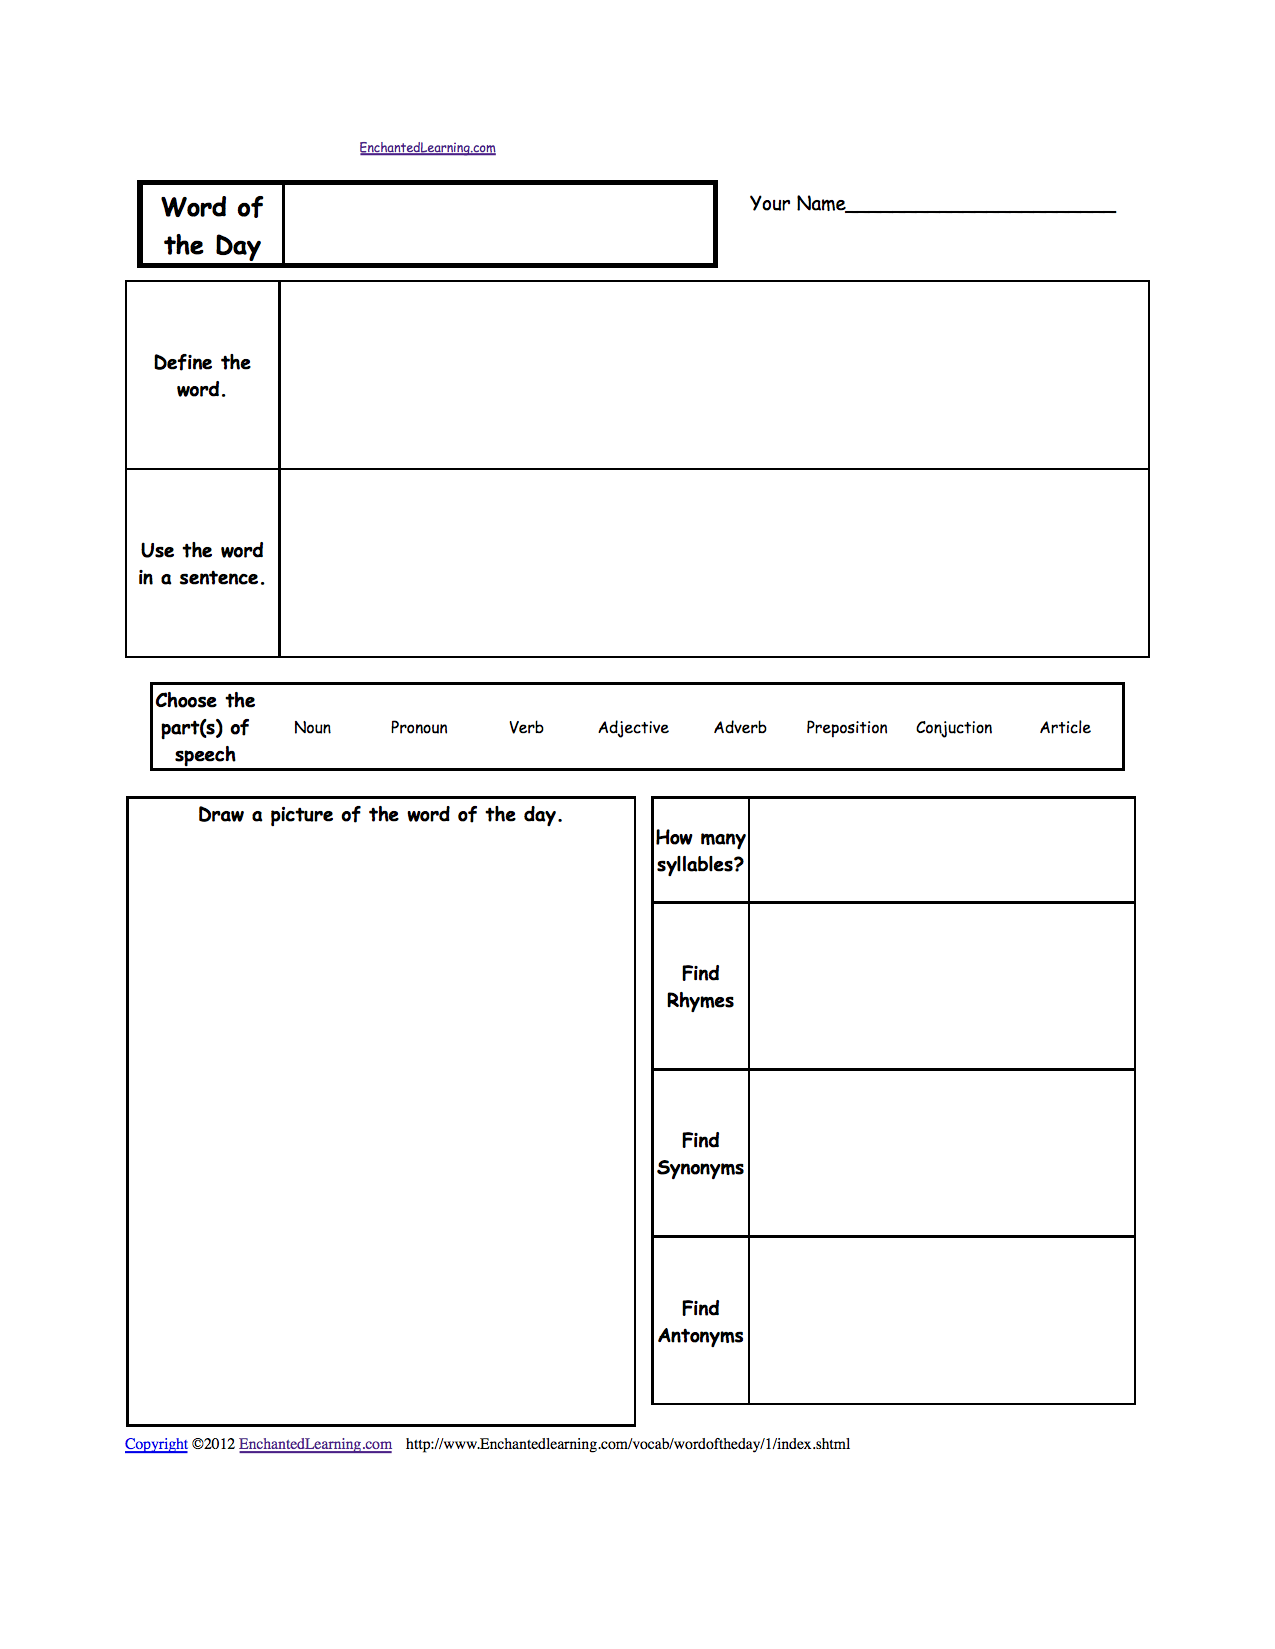 Thanksgiving Crafts Worksheets And Activities EnchantedLearningcom - Free invoice templates pdf american girl doll store online